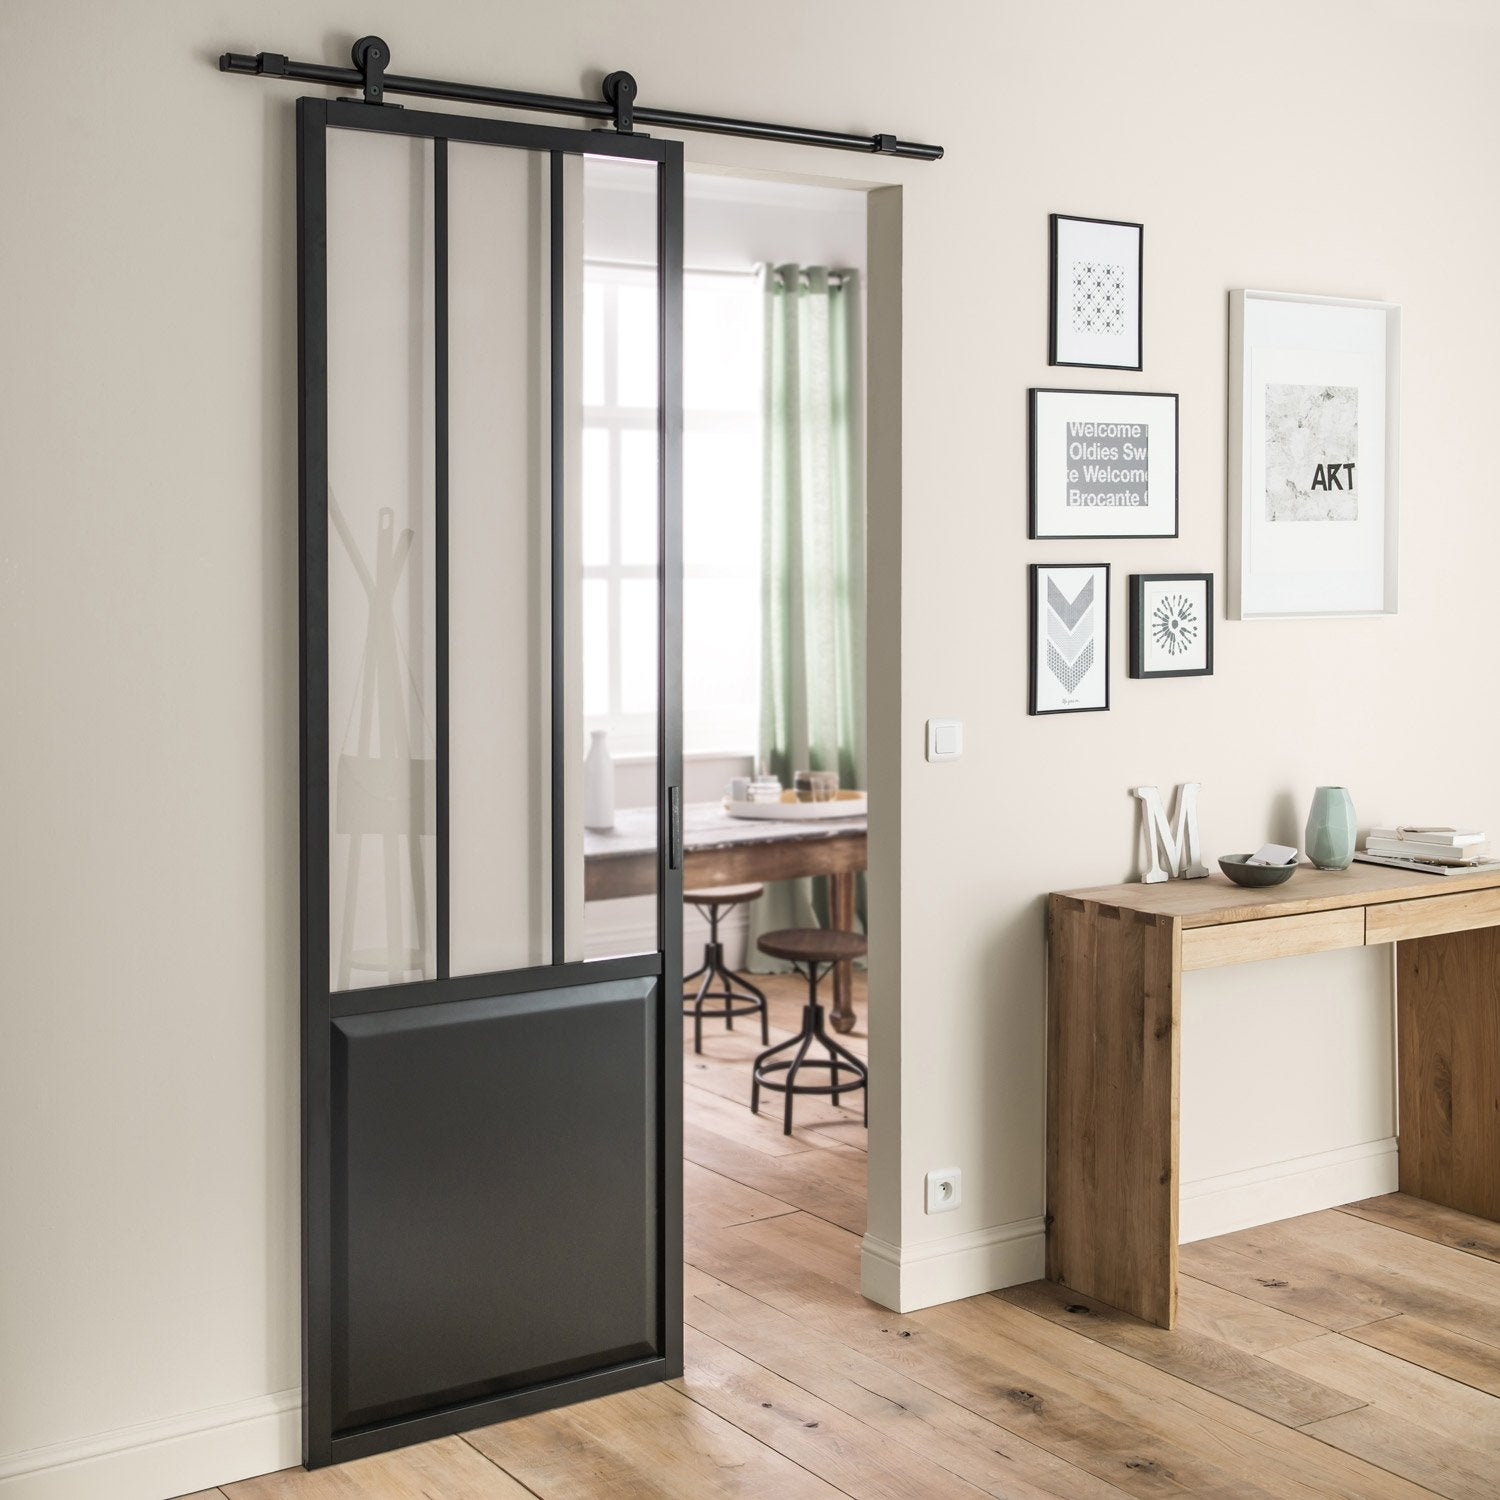 Ensemble porte coulissante atelier mdf rev tu avec le rail - Tringle de porte leroy merlin ...